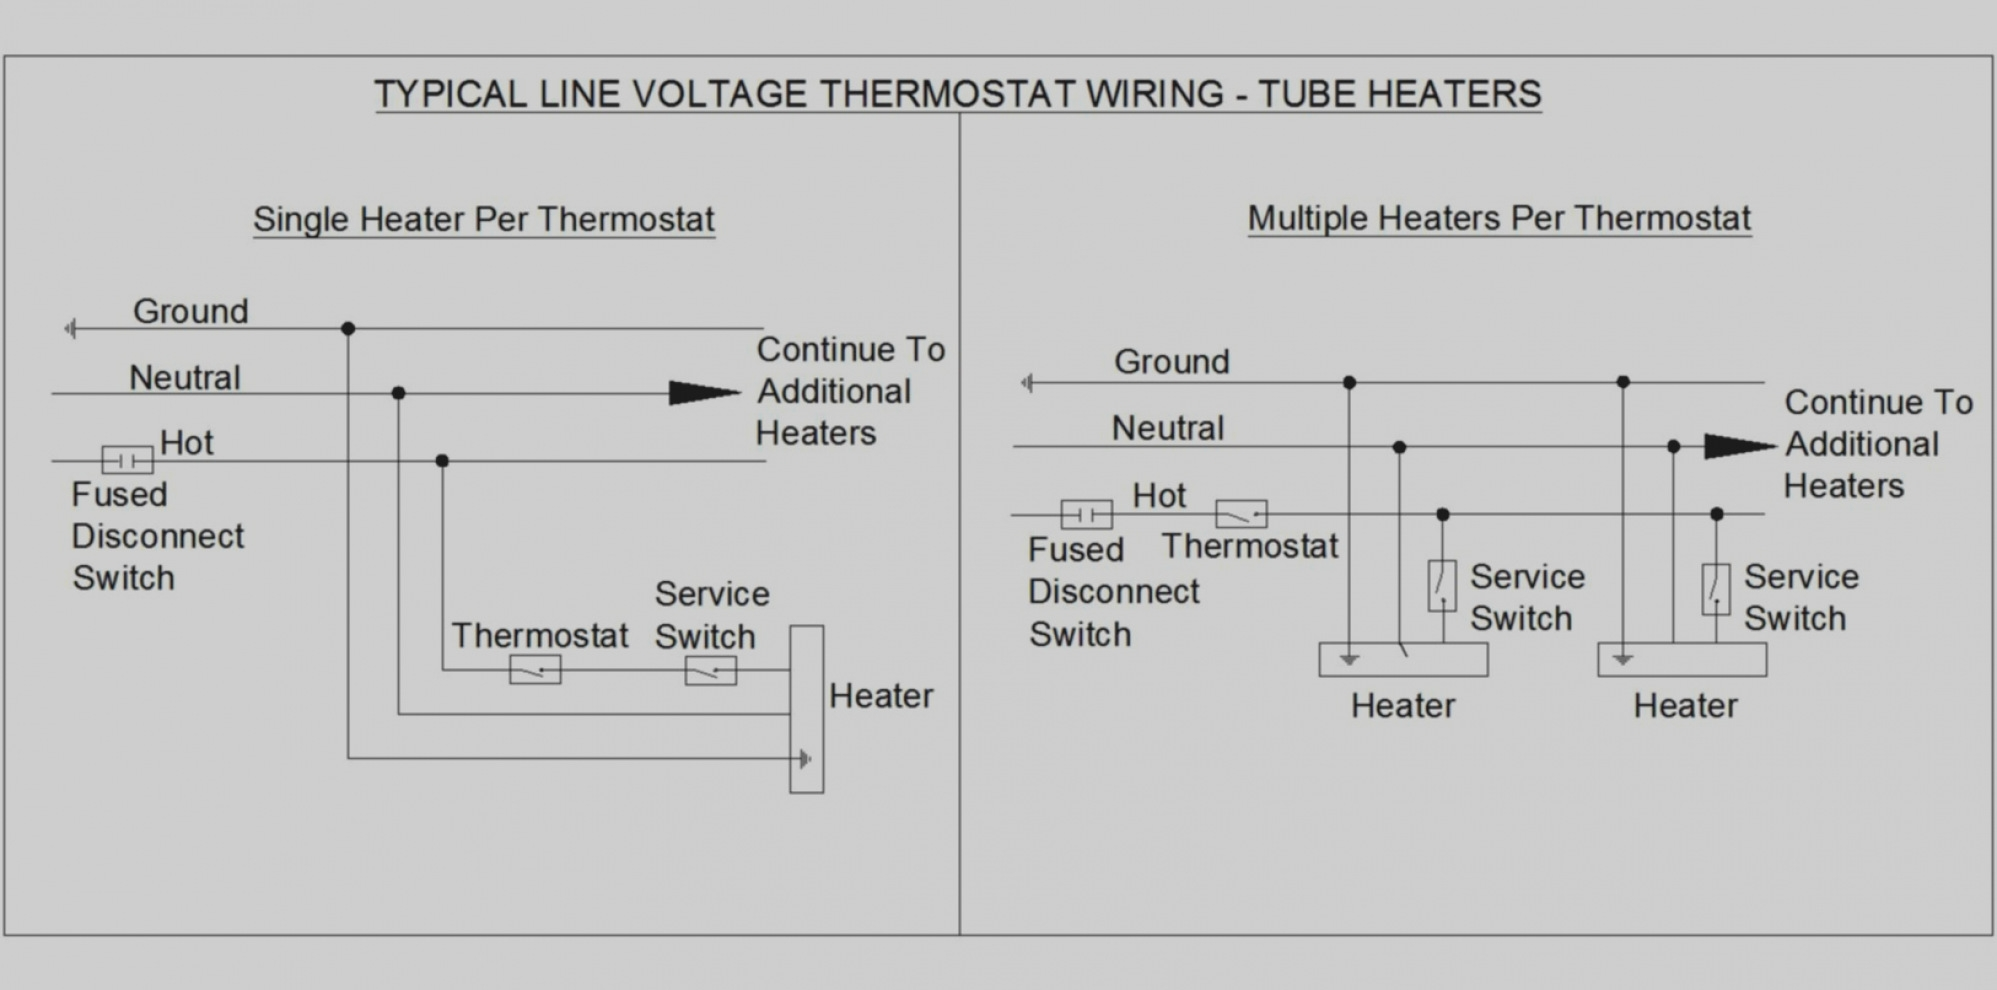 White Rodgers Wiring Diagram Thermostat on honeywell thermostat diagram, white rodgers furnace thermostat diagram, white rodgers air conditioner, old white rodgers thermostat diagram, comfort air wiring diagram, white rodgers thermostats replacement, white rodgers zone valve, gas valve wiring diagram, rthl3550 wiring diagram, white rodgers thermostats for homes, heat and air thermostat diagram, coleman heat pump wiring diagram, white rodgers type 91 relay, electric light wiring diagram, rth2300 wiring diagram, white rodgers fan relay diagram, typical heat pump wiring diagram, heat pump thermostat diagram, white rodgers gas valves parts, white rodgers gas valve wiring,